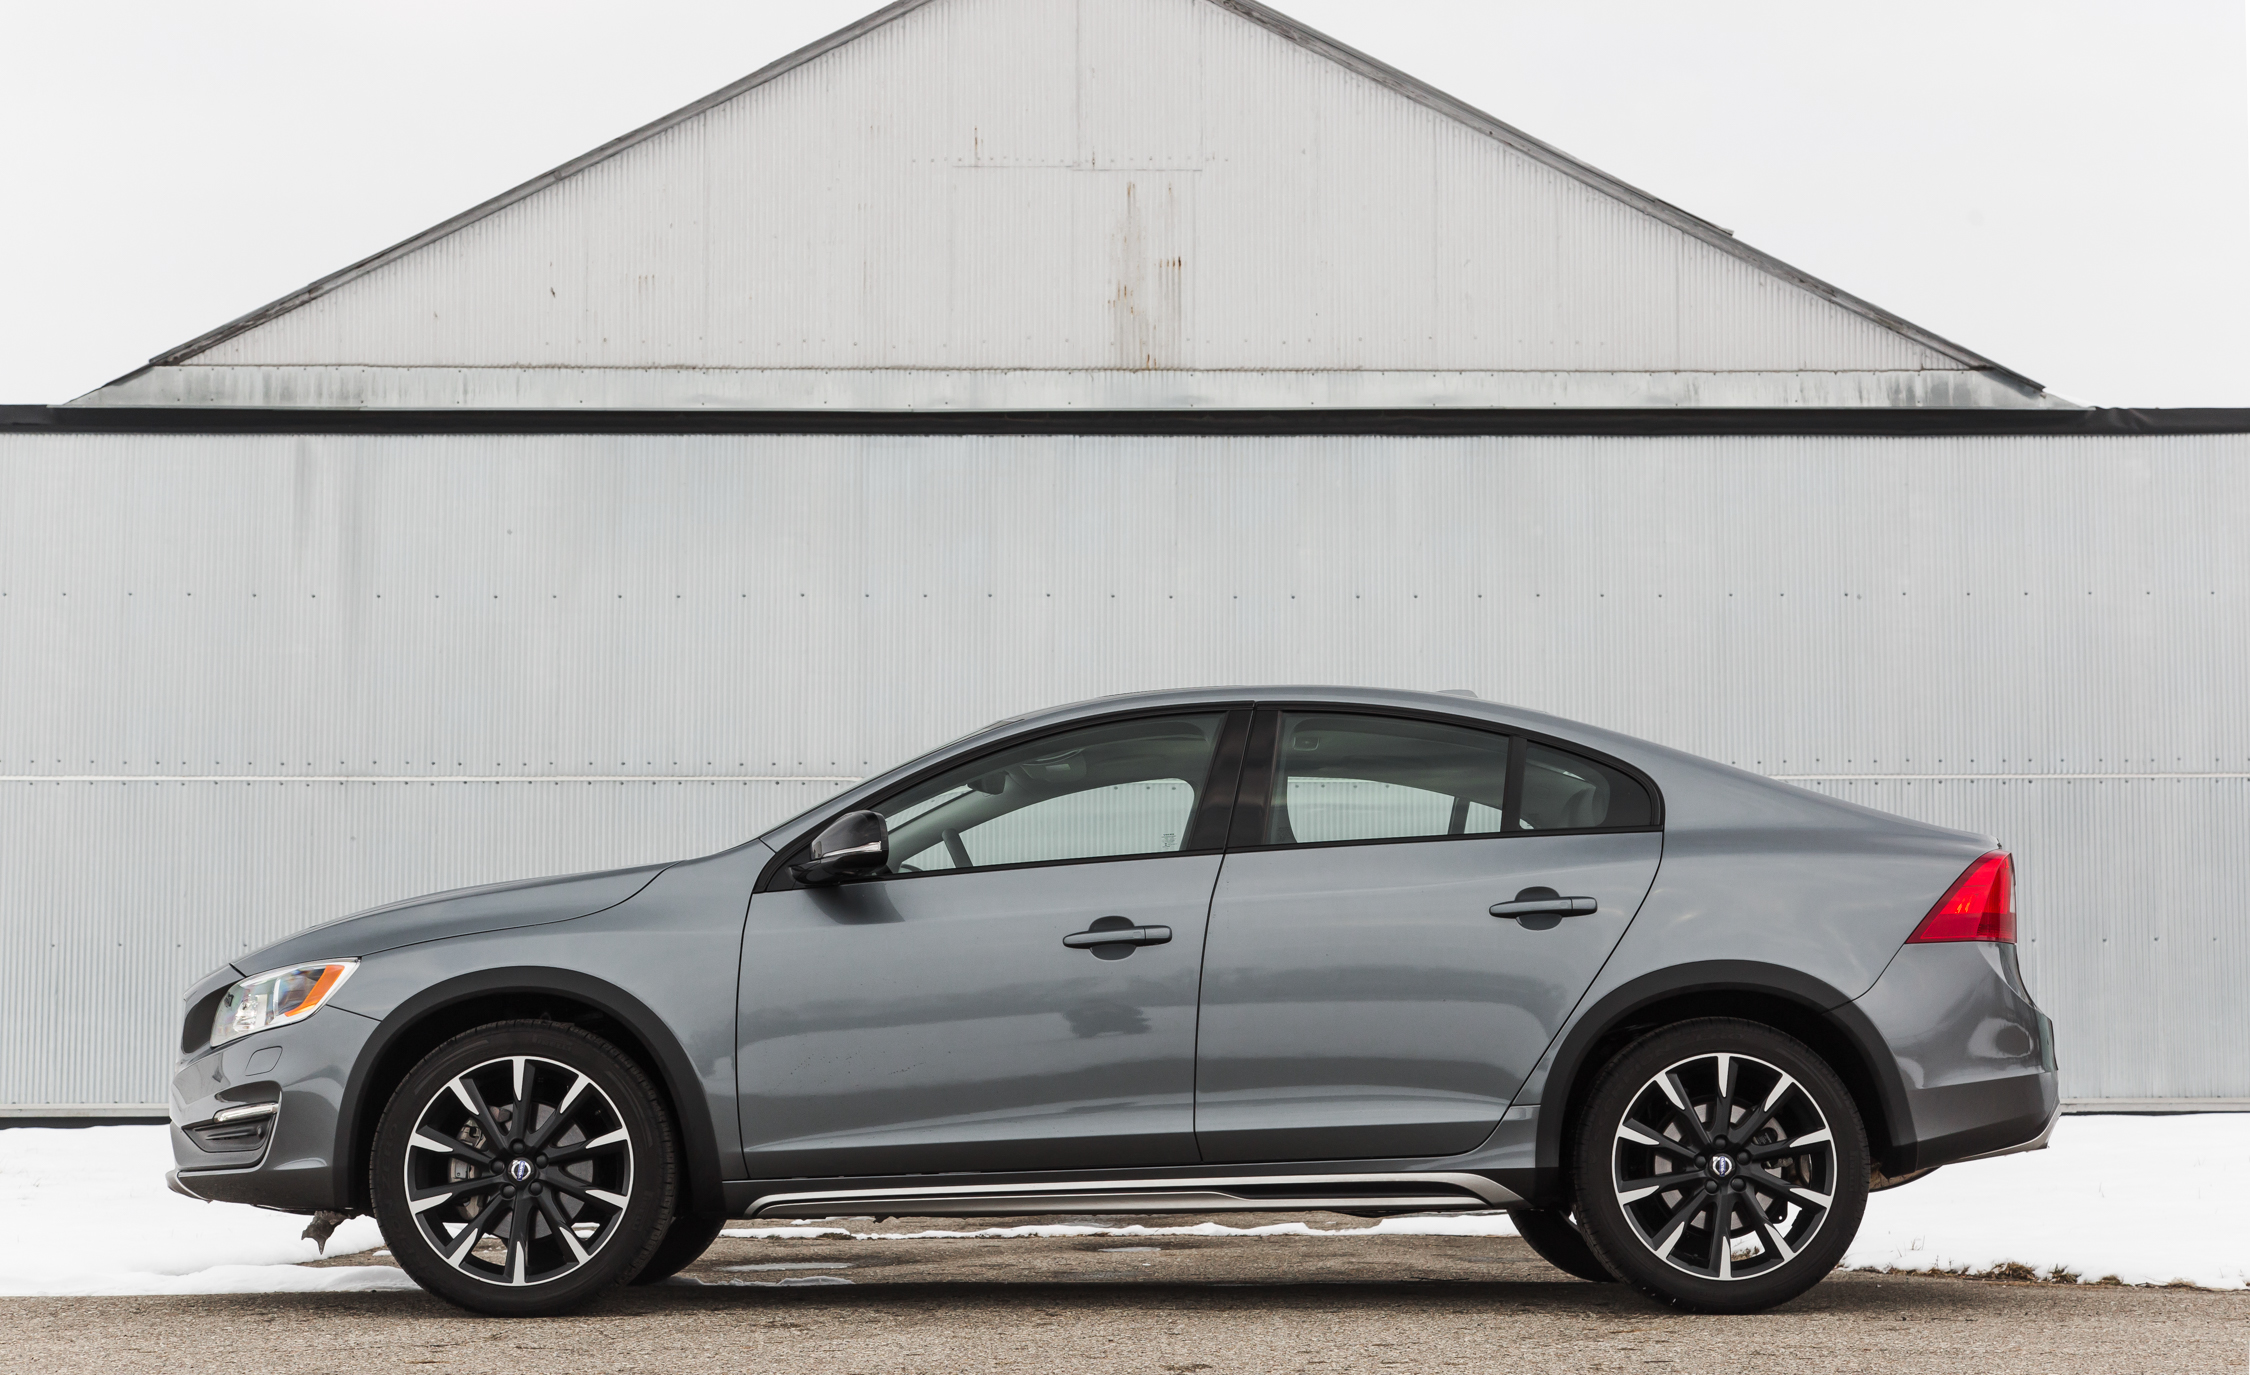 2016 Volvo S60 Cross Country Exterior Full Side (Photo 6 of 21)